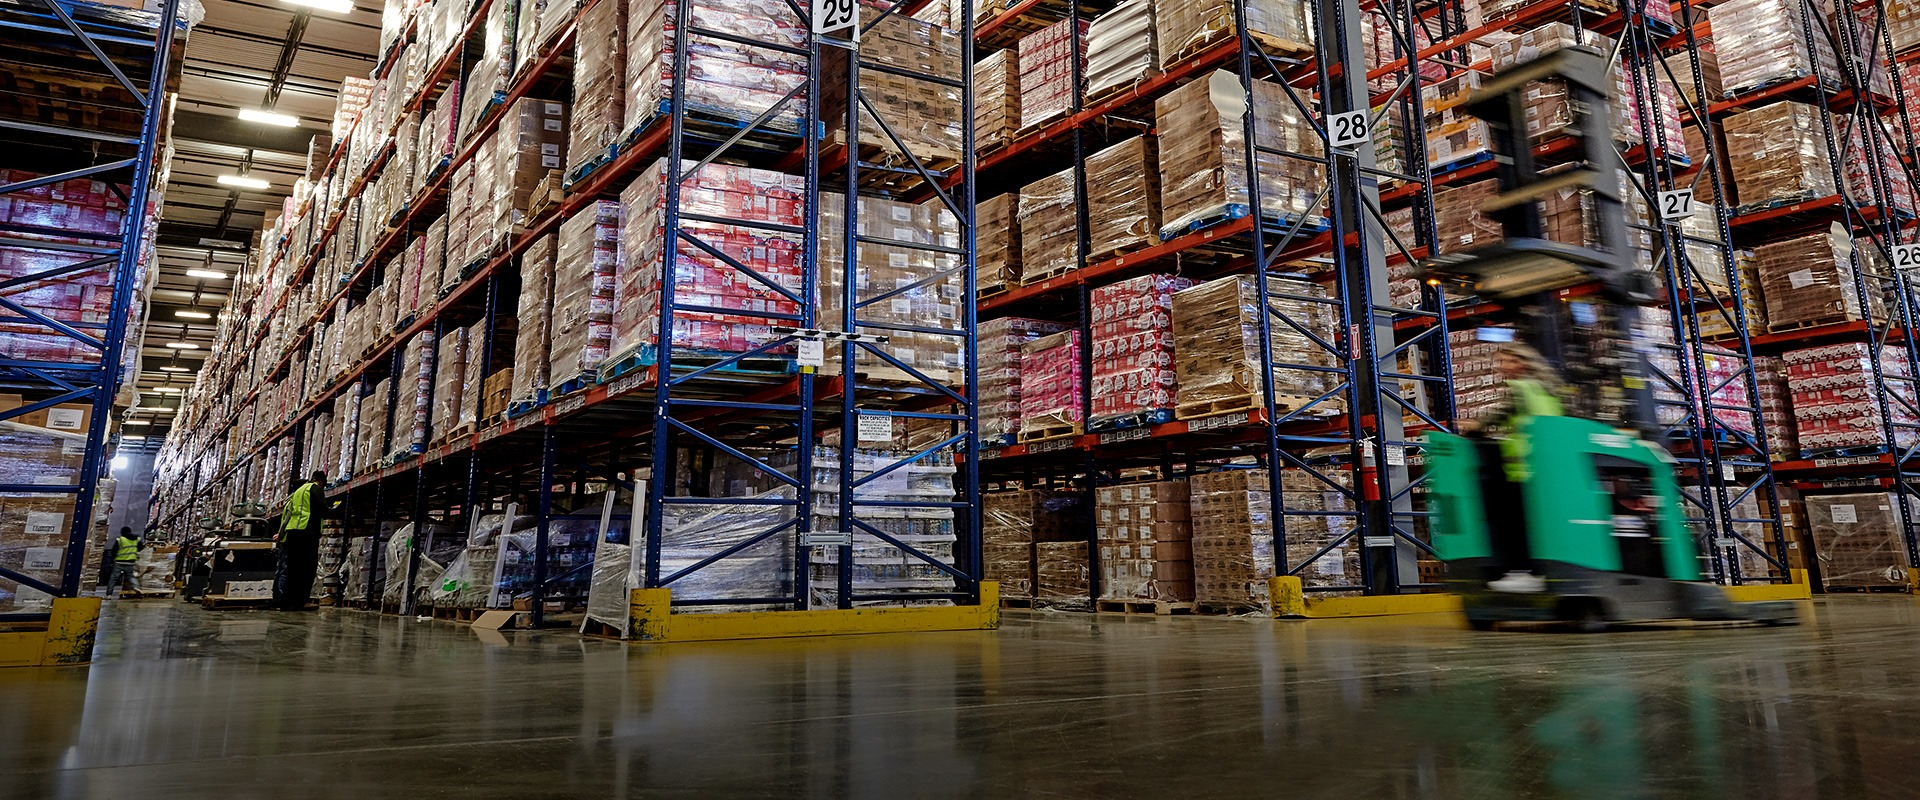 About RJW - Warehousing